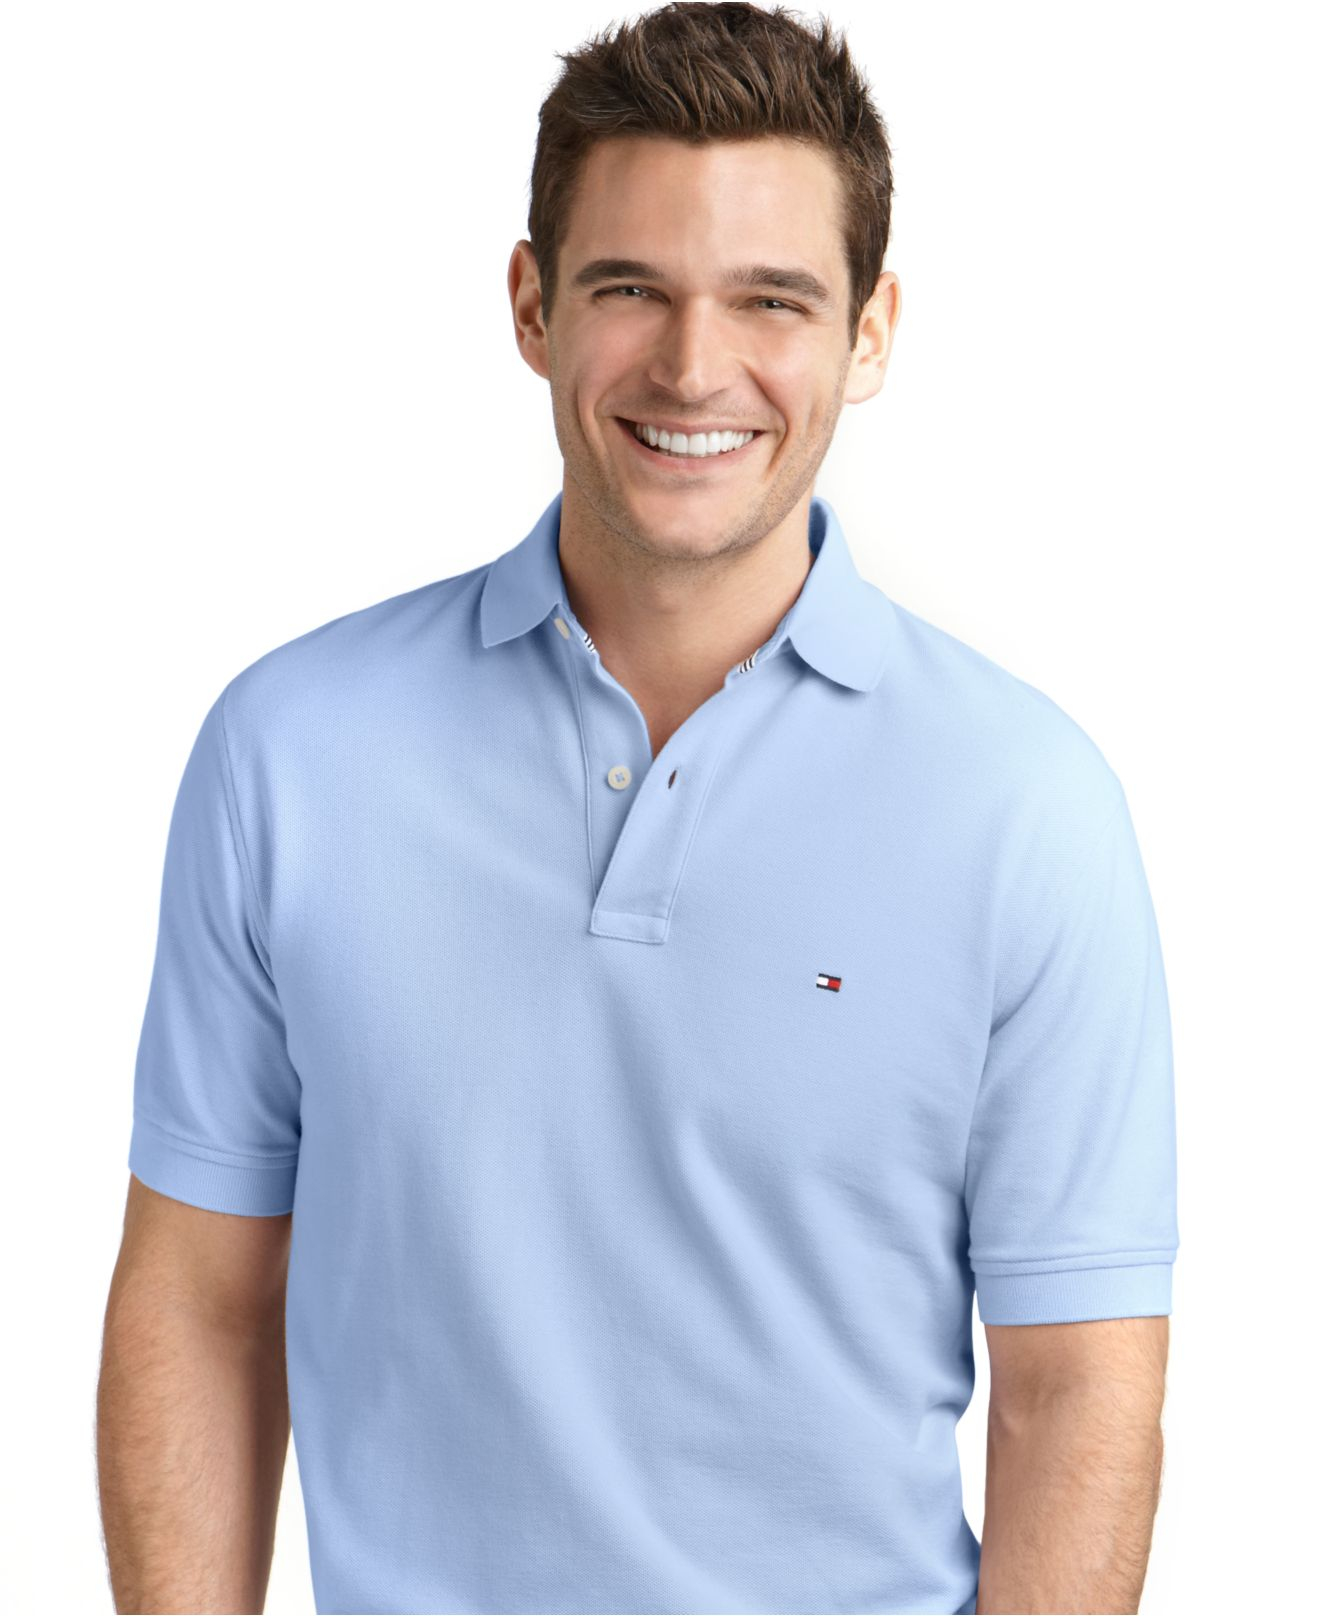 tommy hilfiger classic fit ivy polo in blue for men covington blue lyst. Black Bedroom Furniture Sets. Home Design Ideas